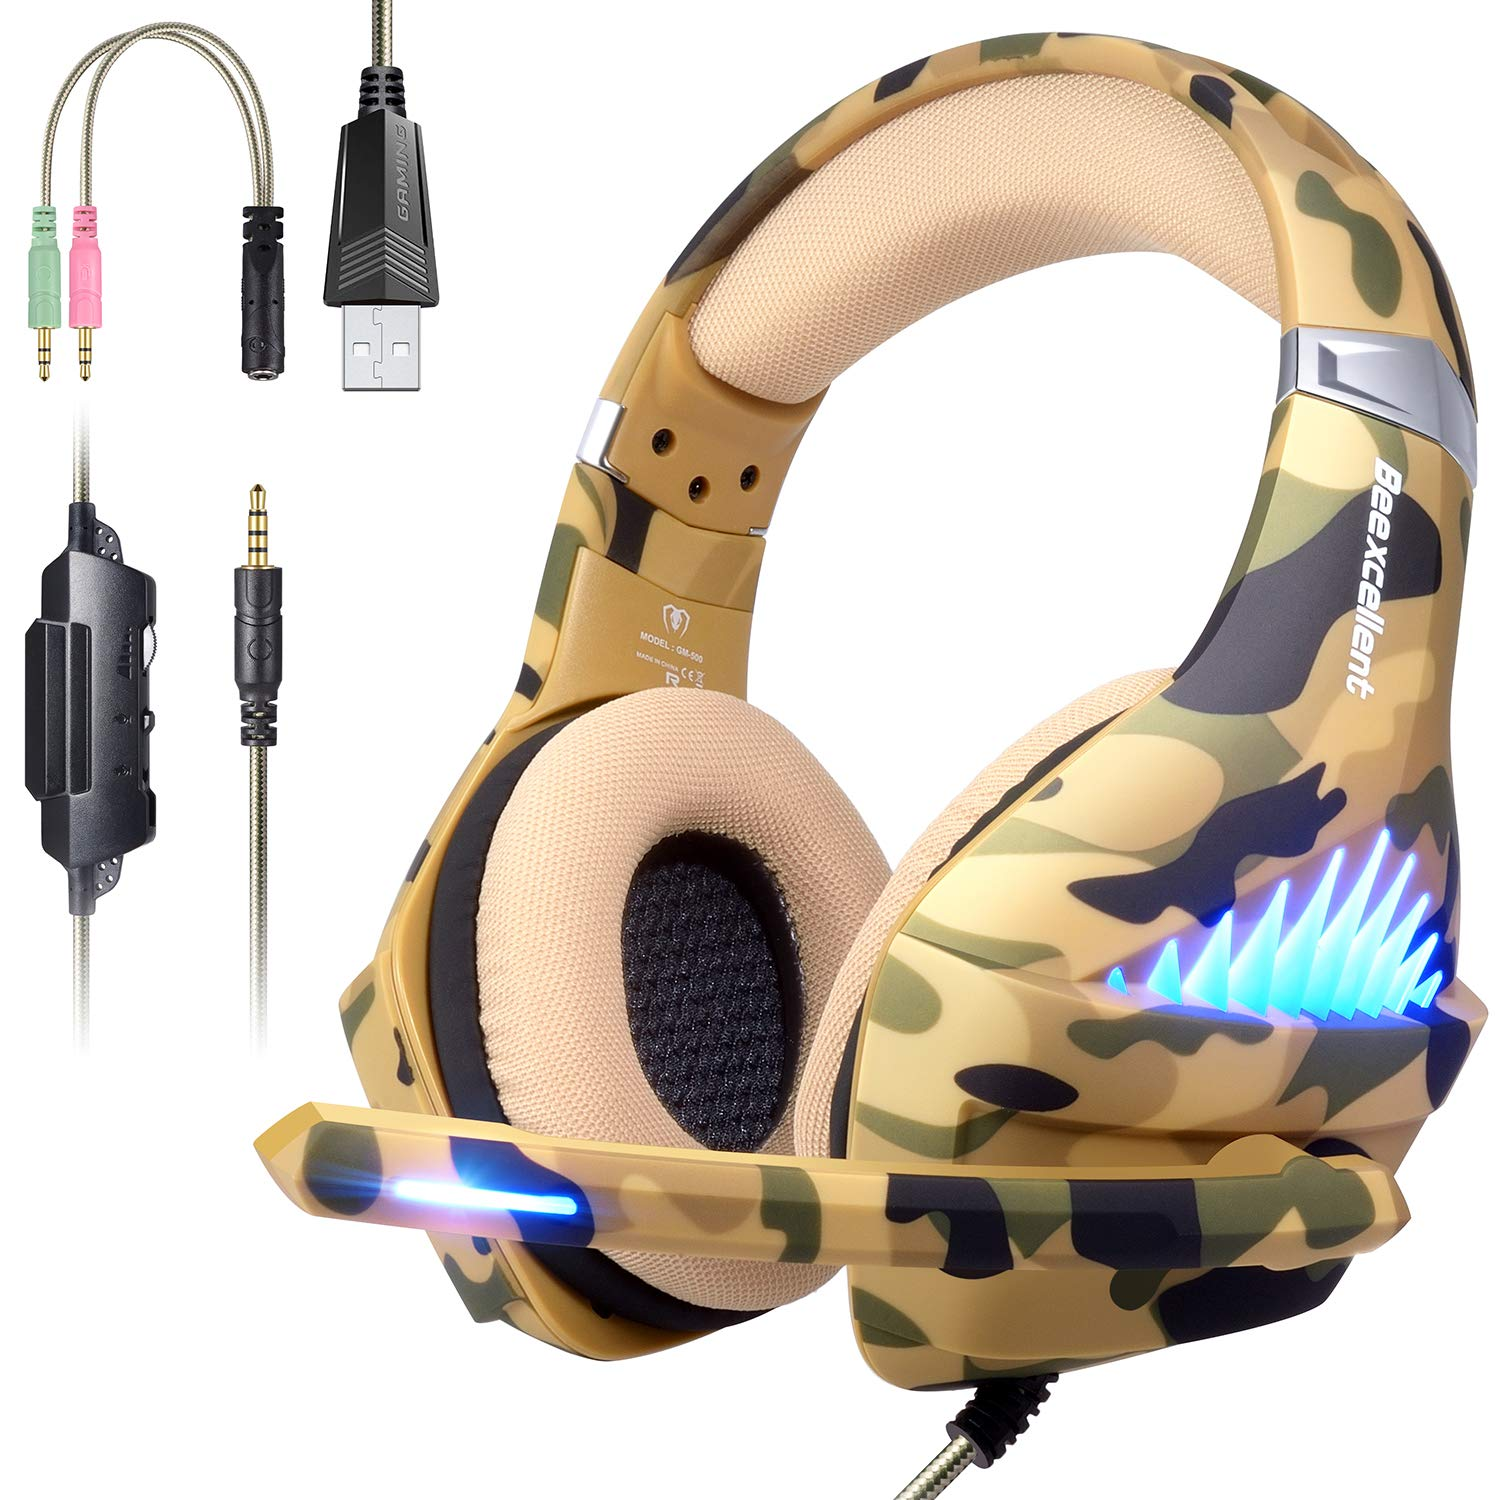 Gaming Headset for PS4, Xbox One, PC, Nintendo Switch, Laptop Cellphone -Stereo Surround Gaming Headphones with Microphone, Noise Cancelling, LED Lights, Volume Control 3.5 mm Jack – Camo